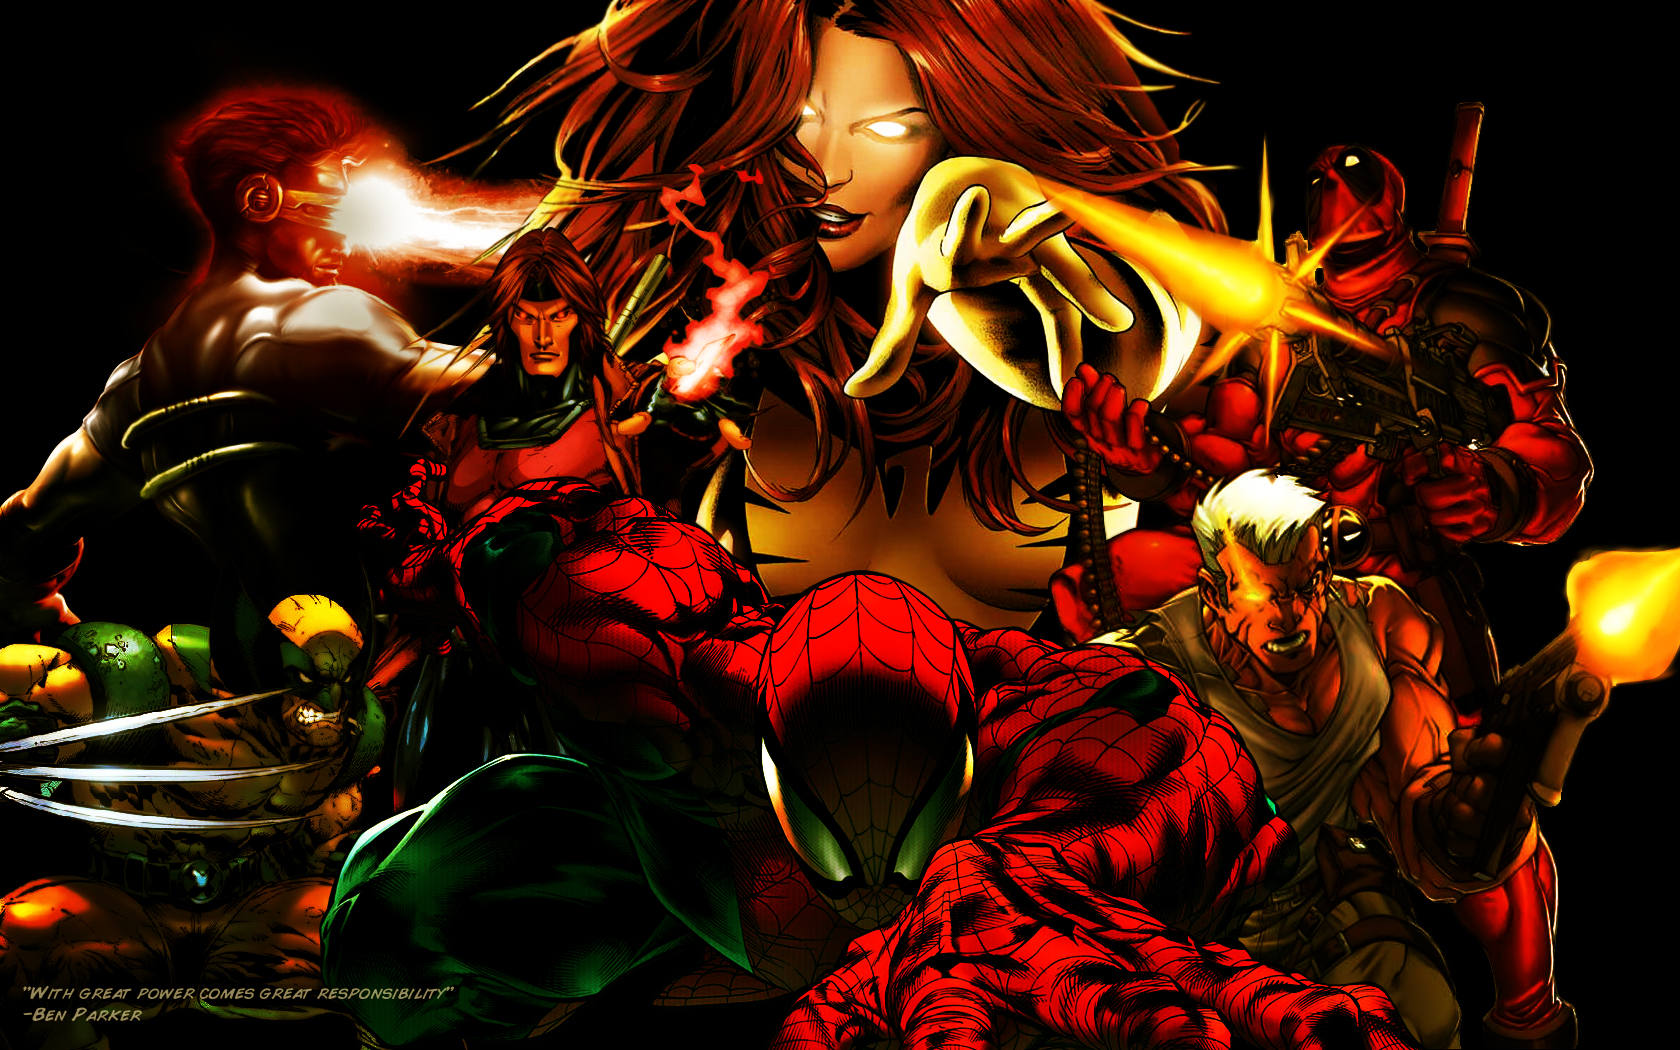 superhero wallpaper desktop   weddingdressincom 1680x1050